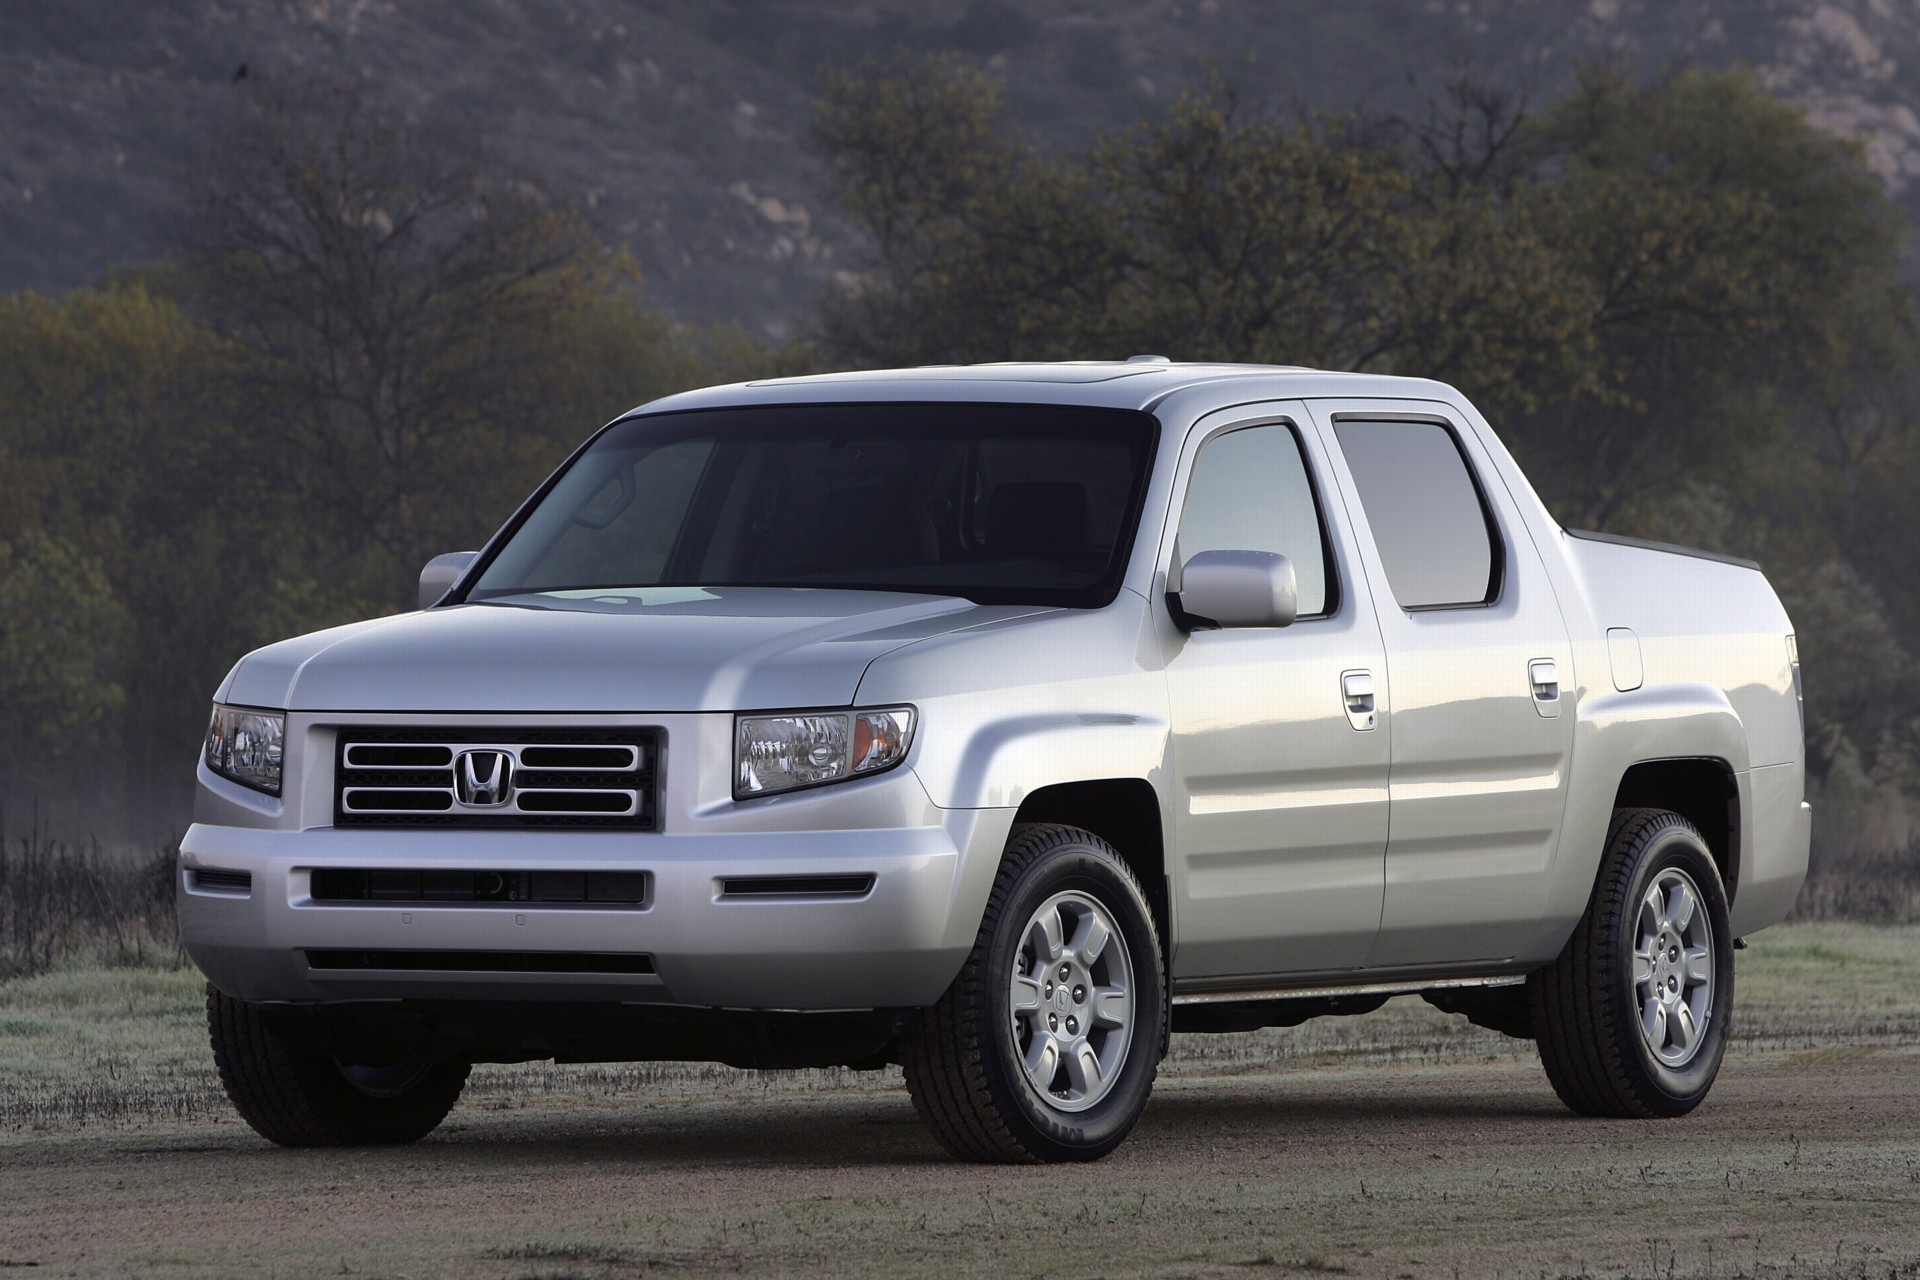 Image Result For Honda Ridgeline Hitch